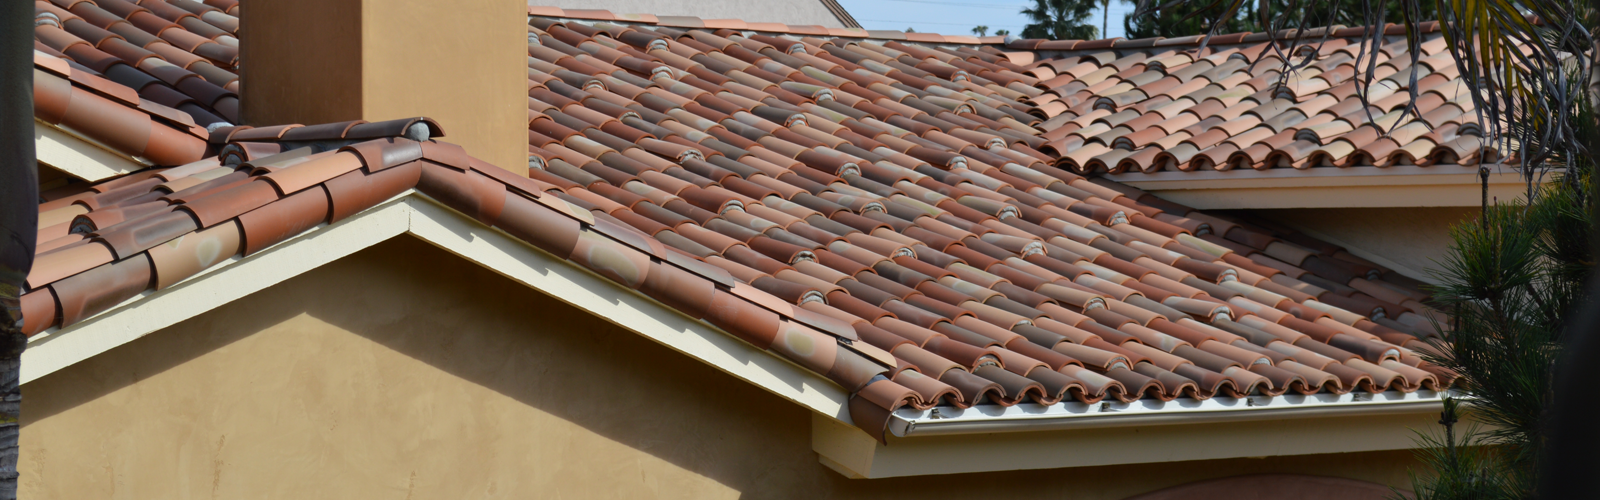 Residential San Diego roofing installation service contractor